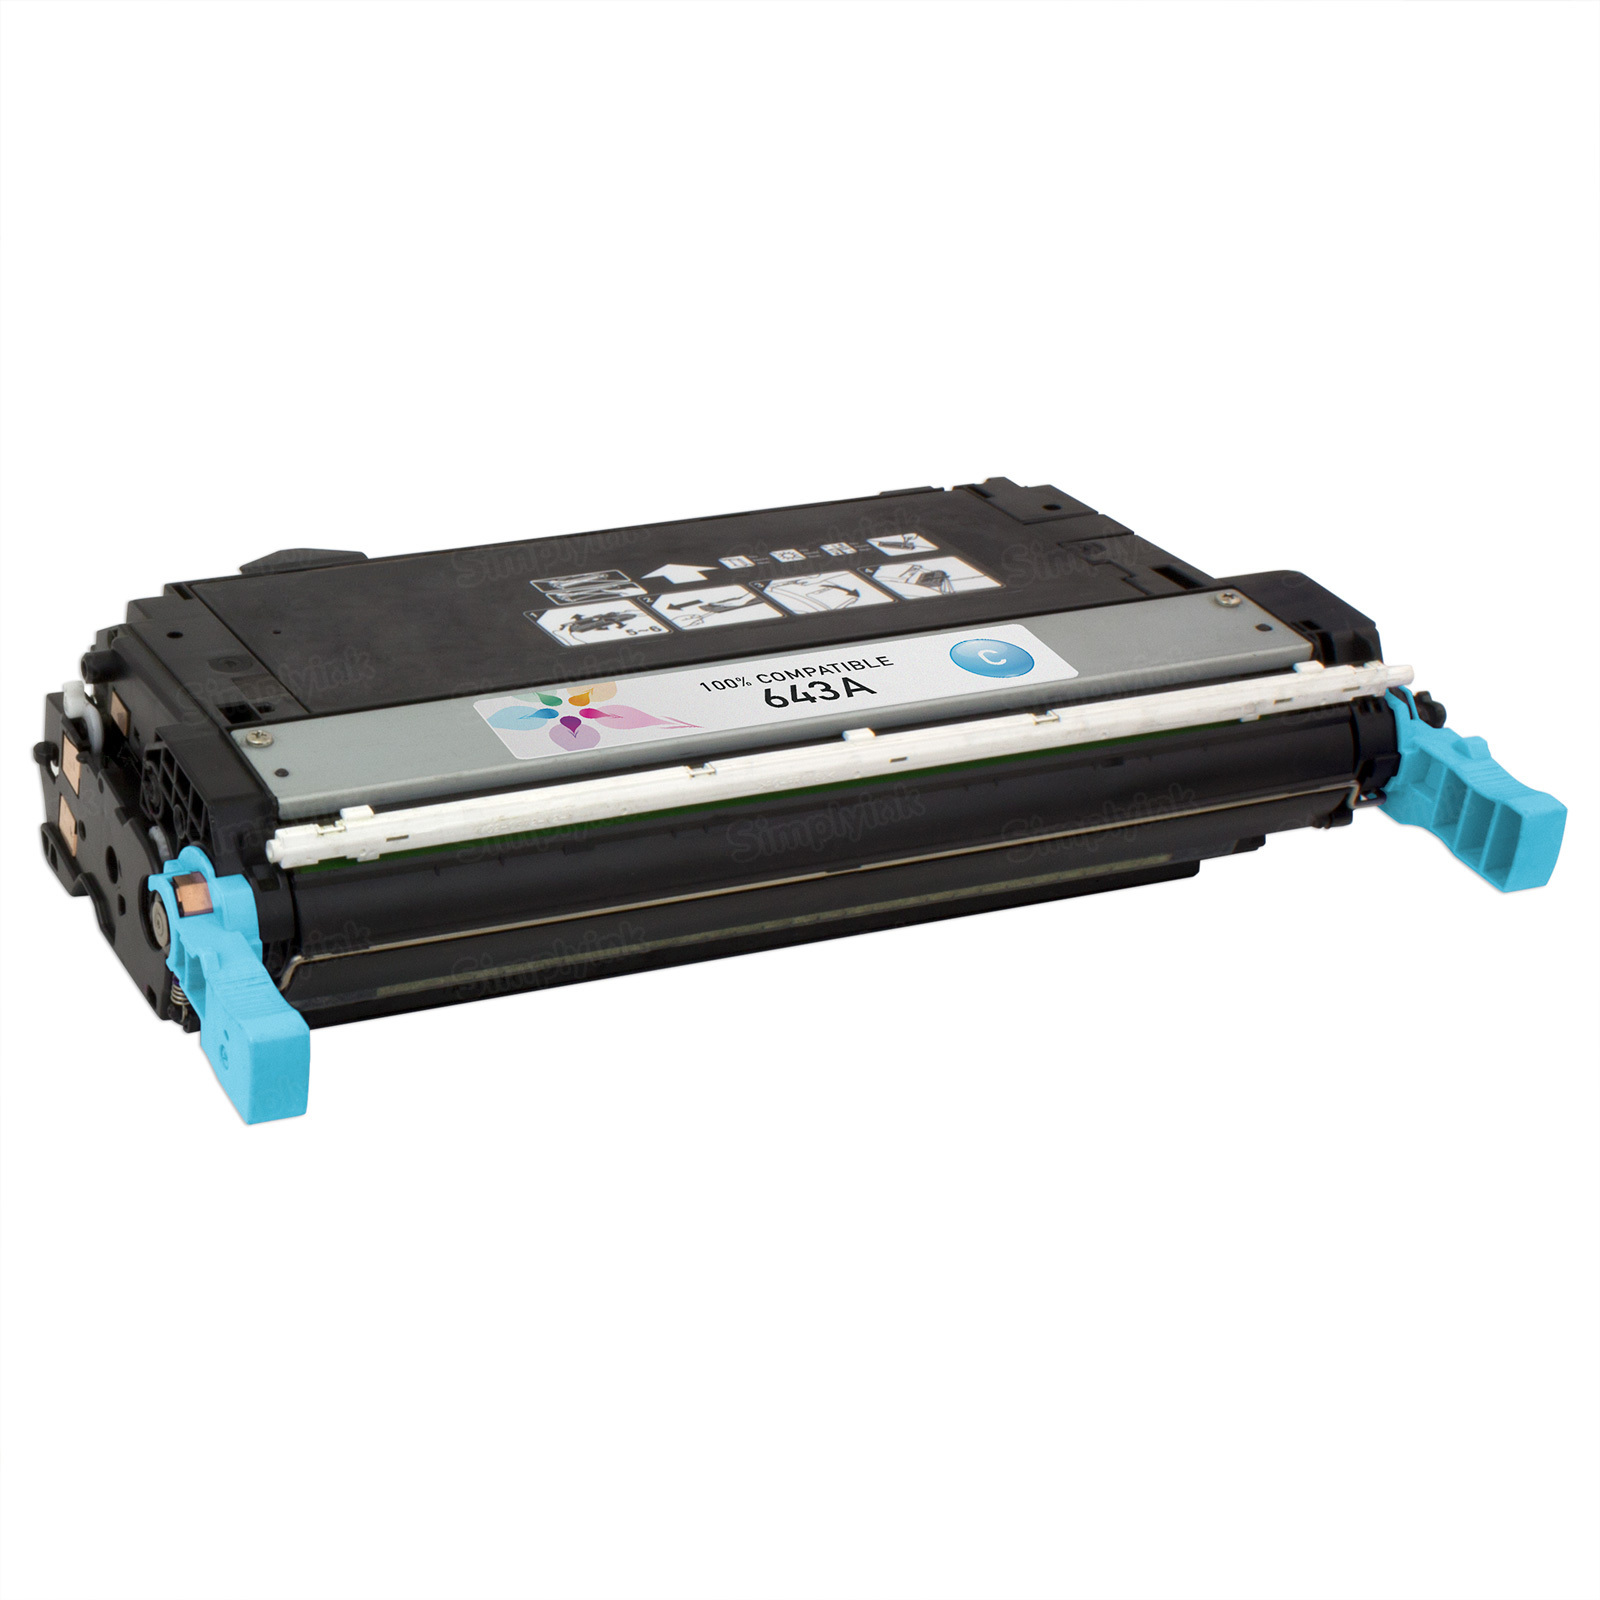 Remanufactured Replacement Cyan Laser Toner for HP 643A